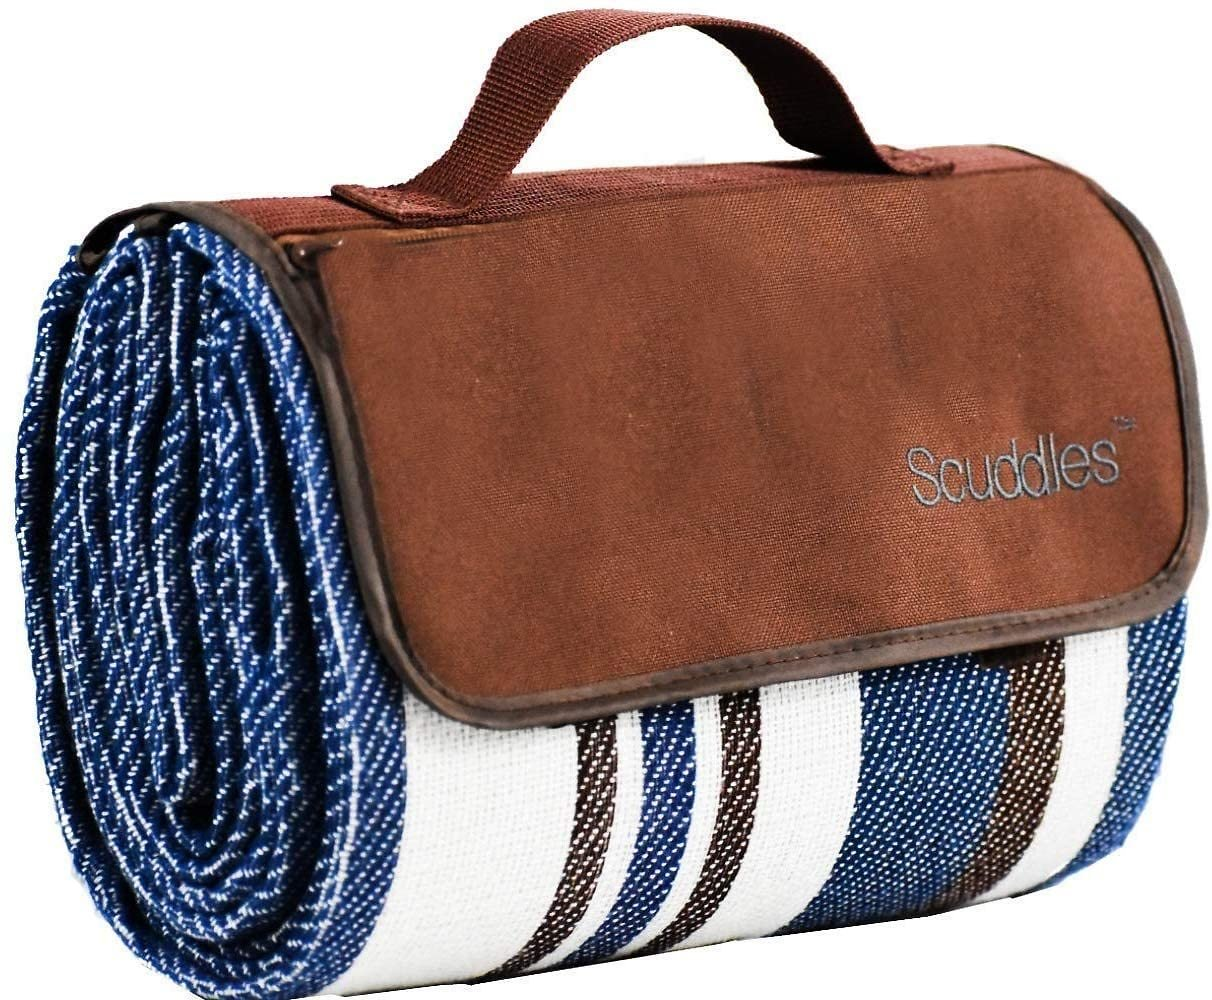 Picnic & Outdoor Blanket Dual Layers for Outdoor Water-Resistant Handy Mat Tote